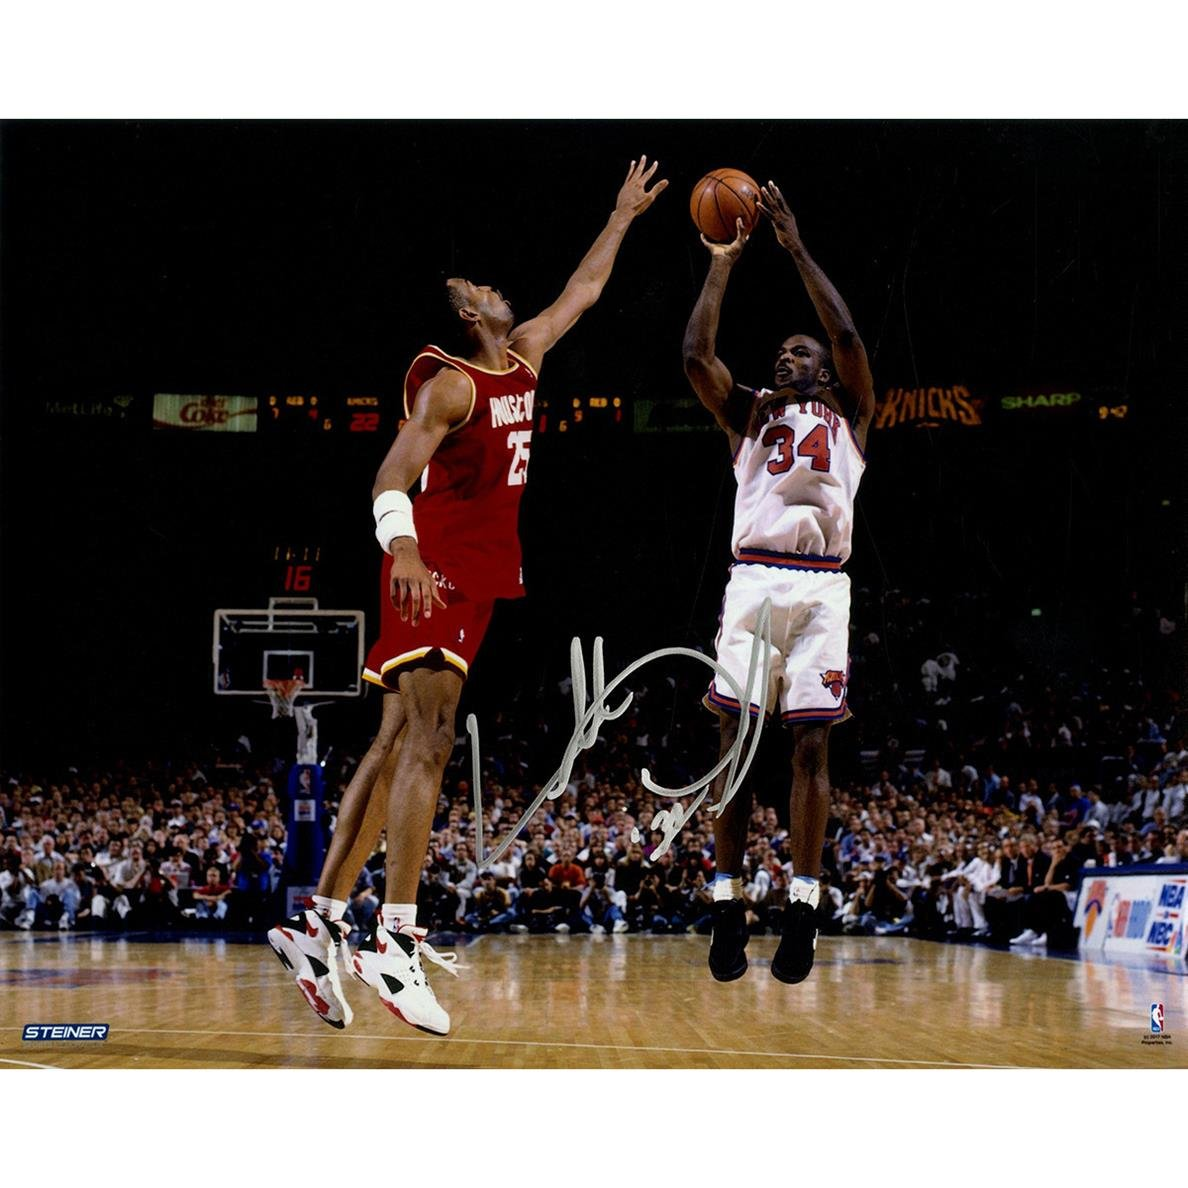 Steiner Sports NBA New York Knicks Charles Oakley サイン入り 「Jumpshot vs. Houston」 横型 8x10インチ 写真   B071LJQP8B